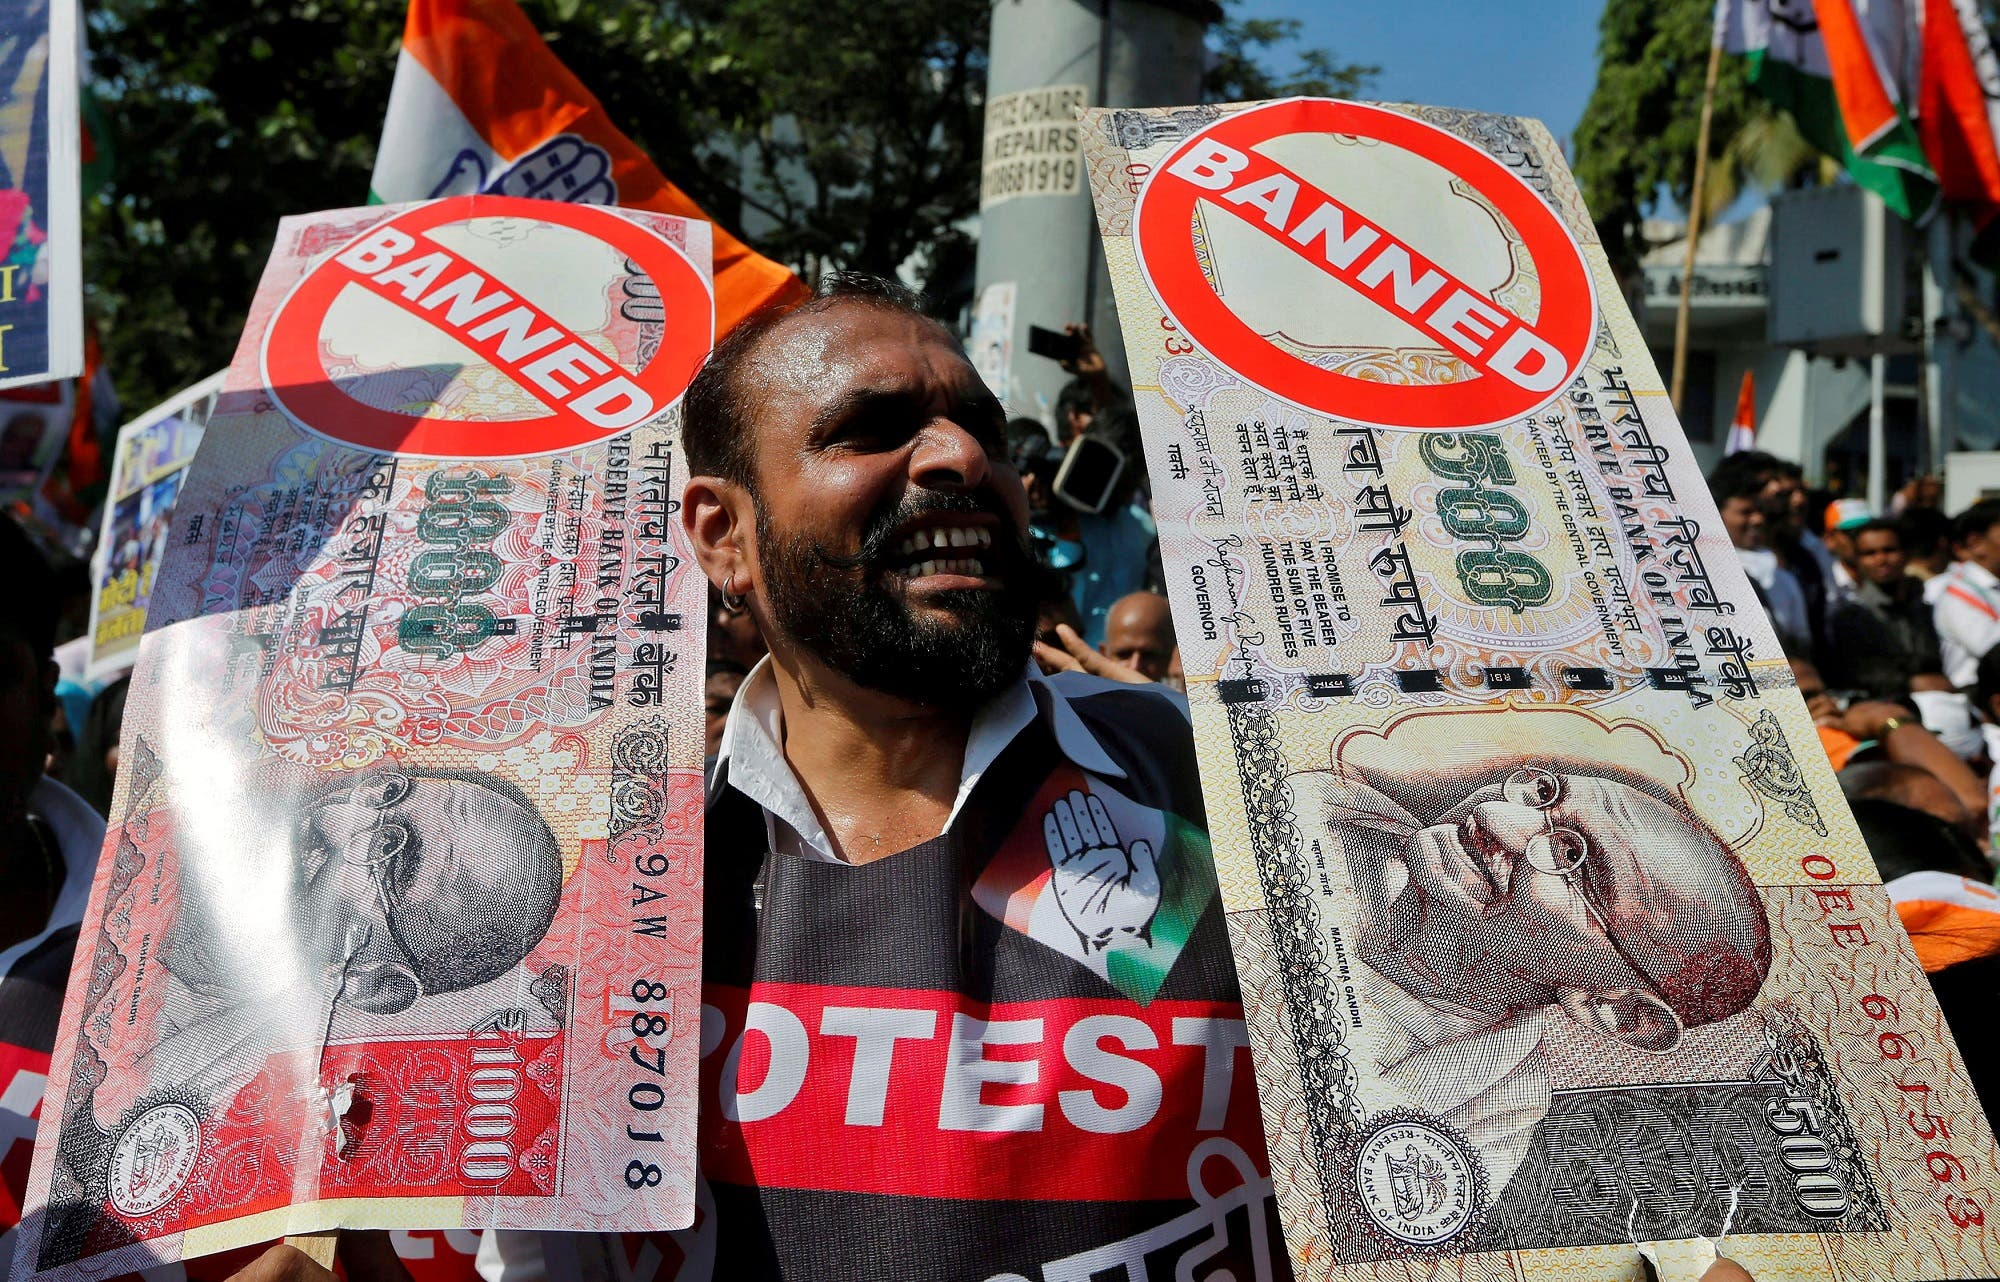 A man holds placards and shouts slogans during a rally organized against the government's decision to withdraw 500 and 1000 Indian rupee banknotes, in Mumbai, on November 28, 2016. (Reuters)